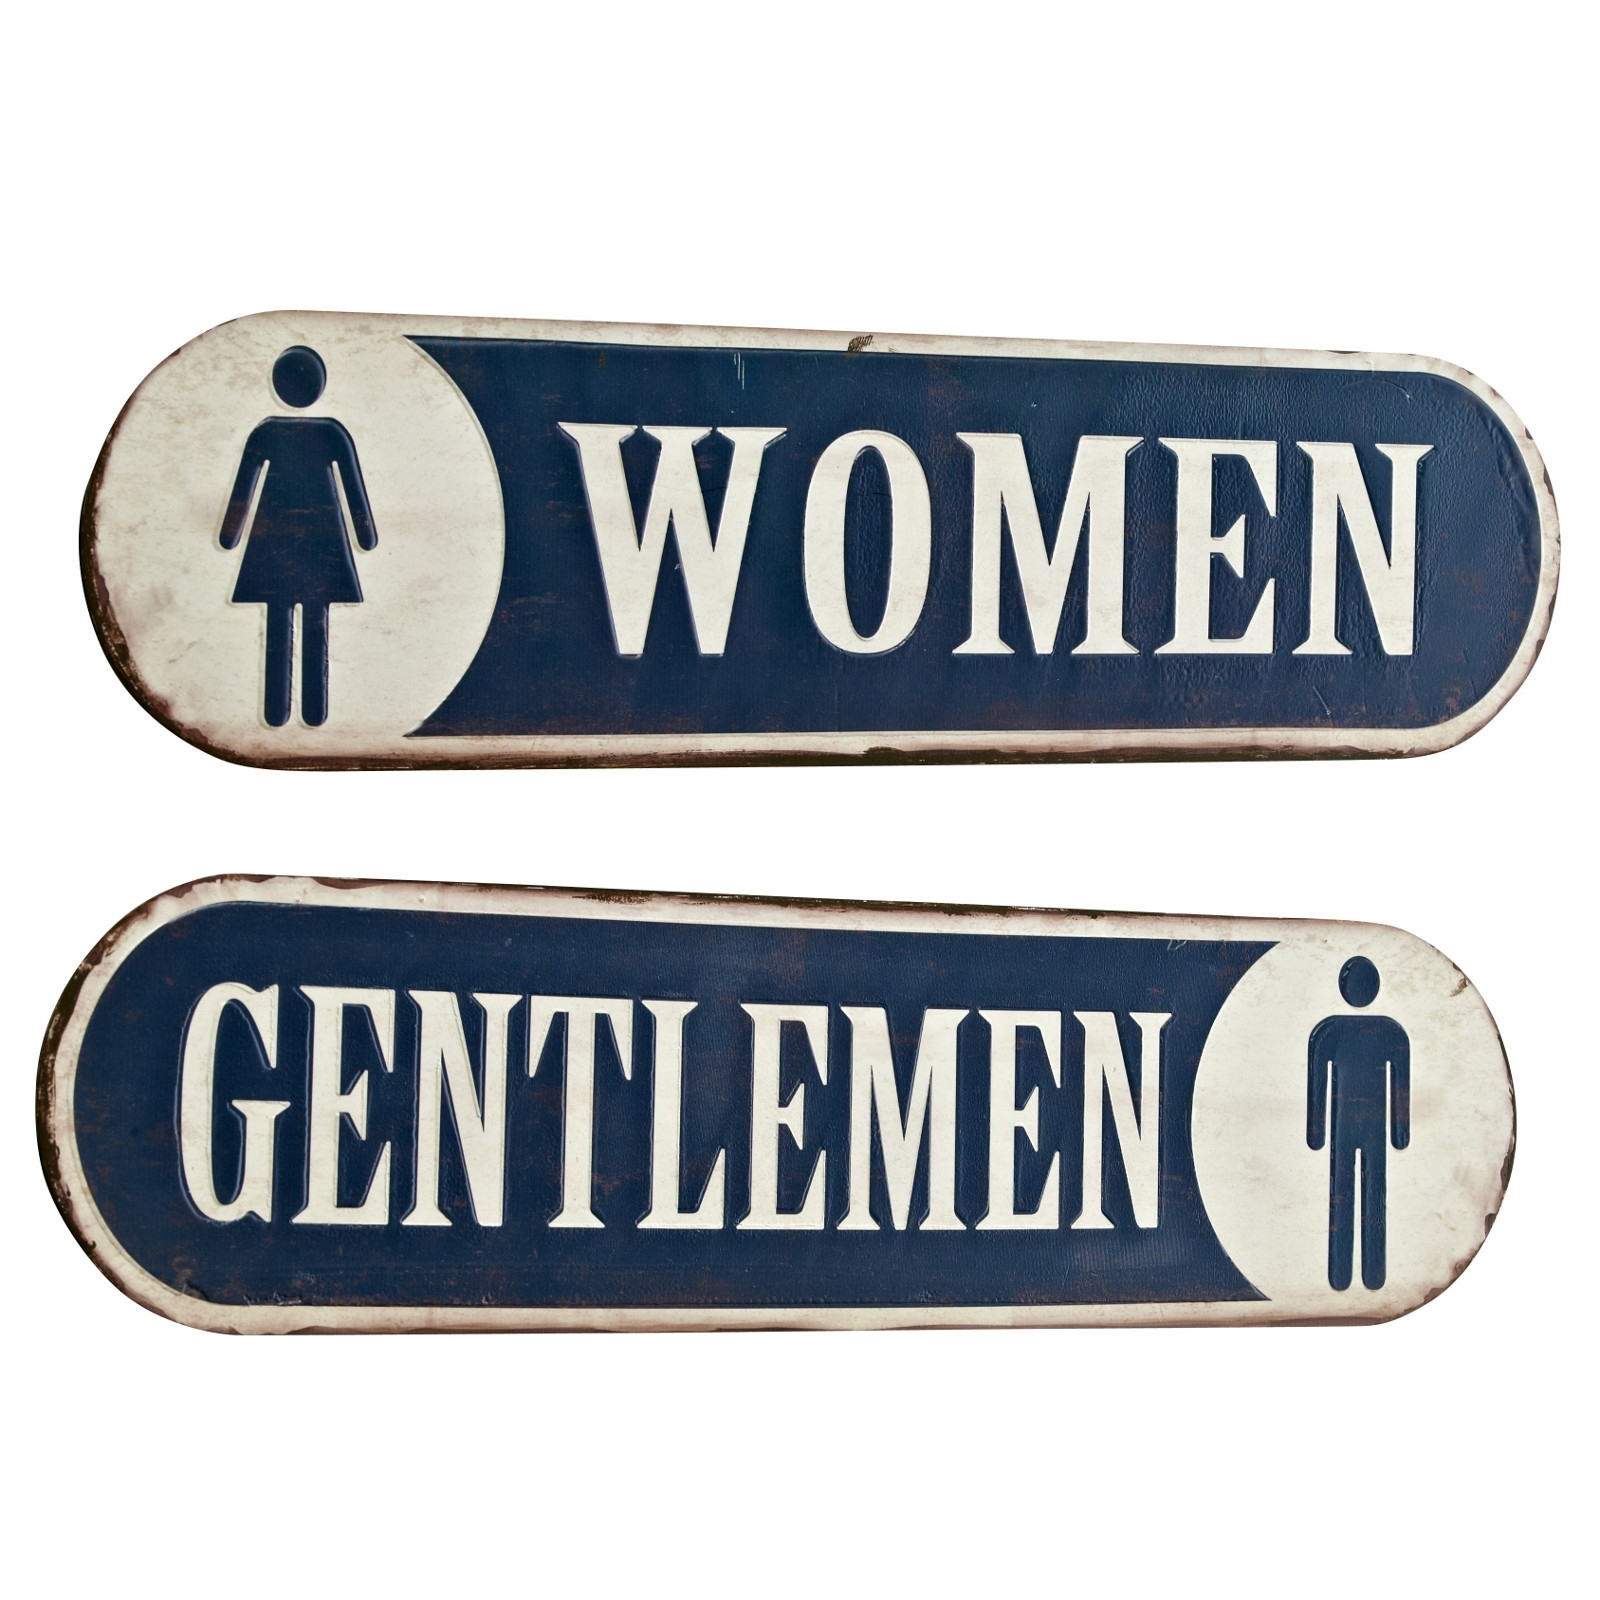 vintage wc signs women gentlemen set toilet decor metal 00 signs ebay. Black Bedroom Furniture Sets. Home Design Ideas